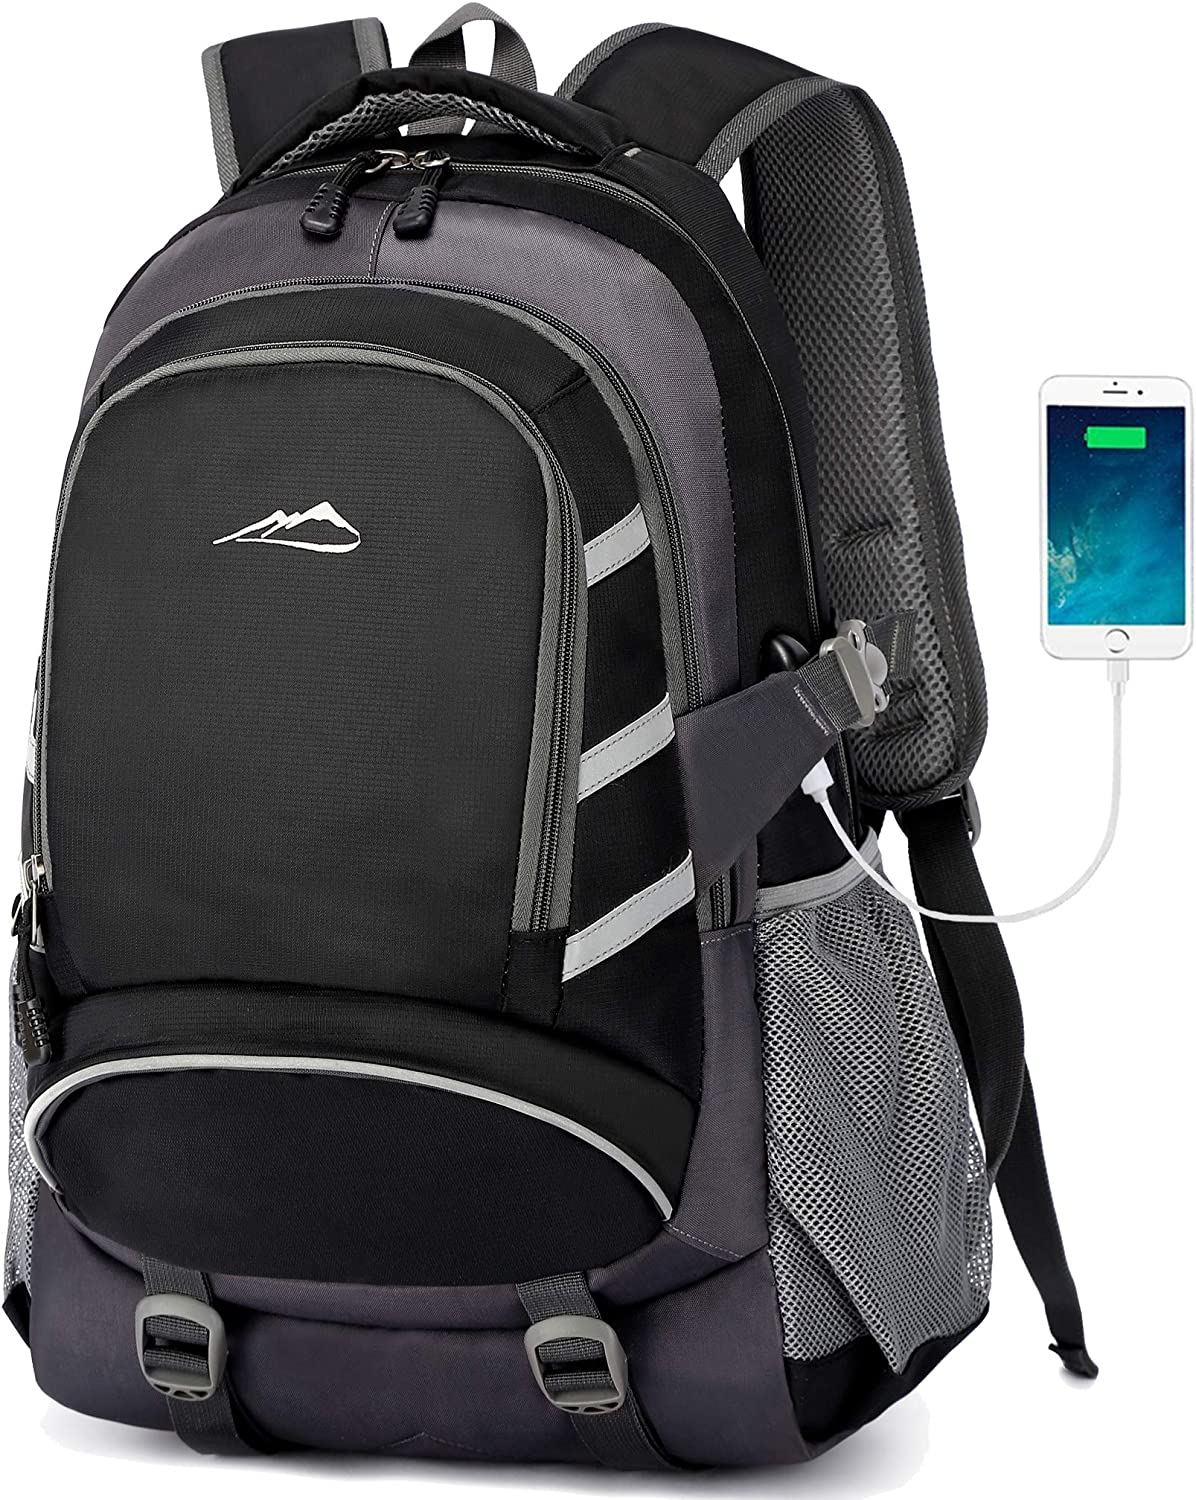 Backpack For School Student CollegeBookbag Business Travel with USB Charging Port Fit Laptop Up to 15.6 Inch Chest Luggage Straps Night Light Reflective (Black)